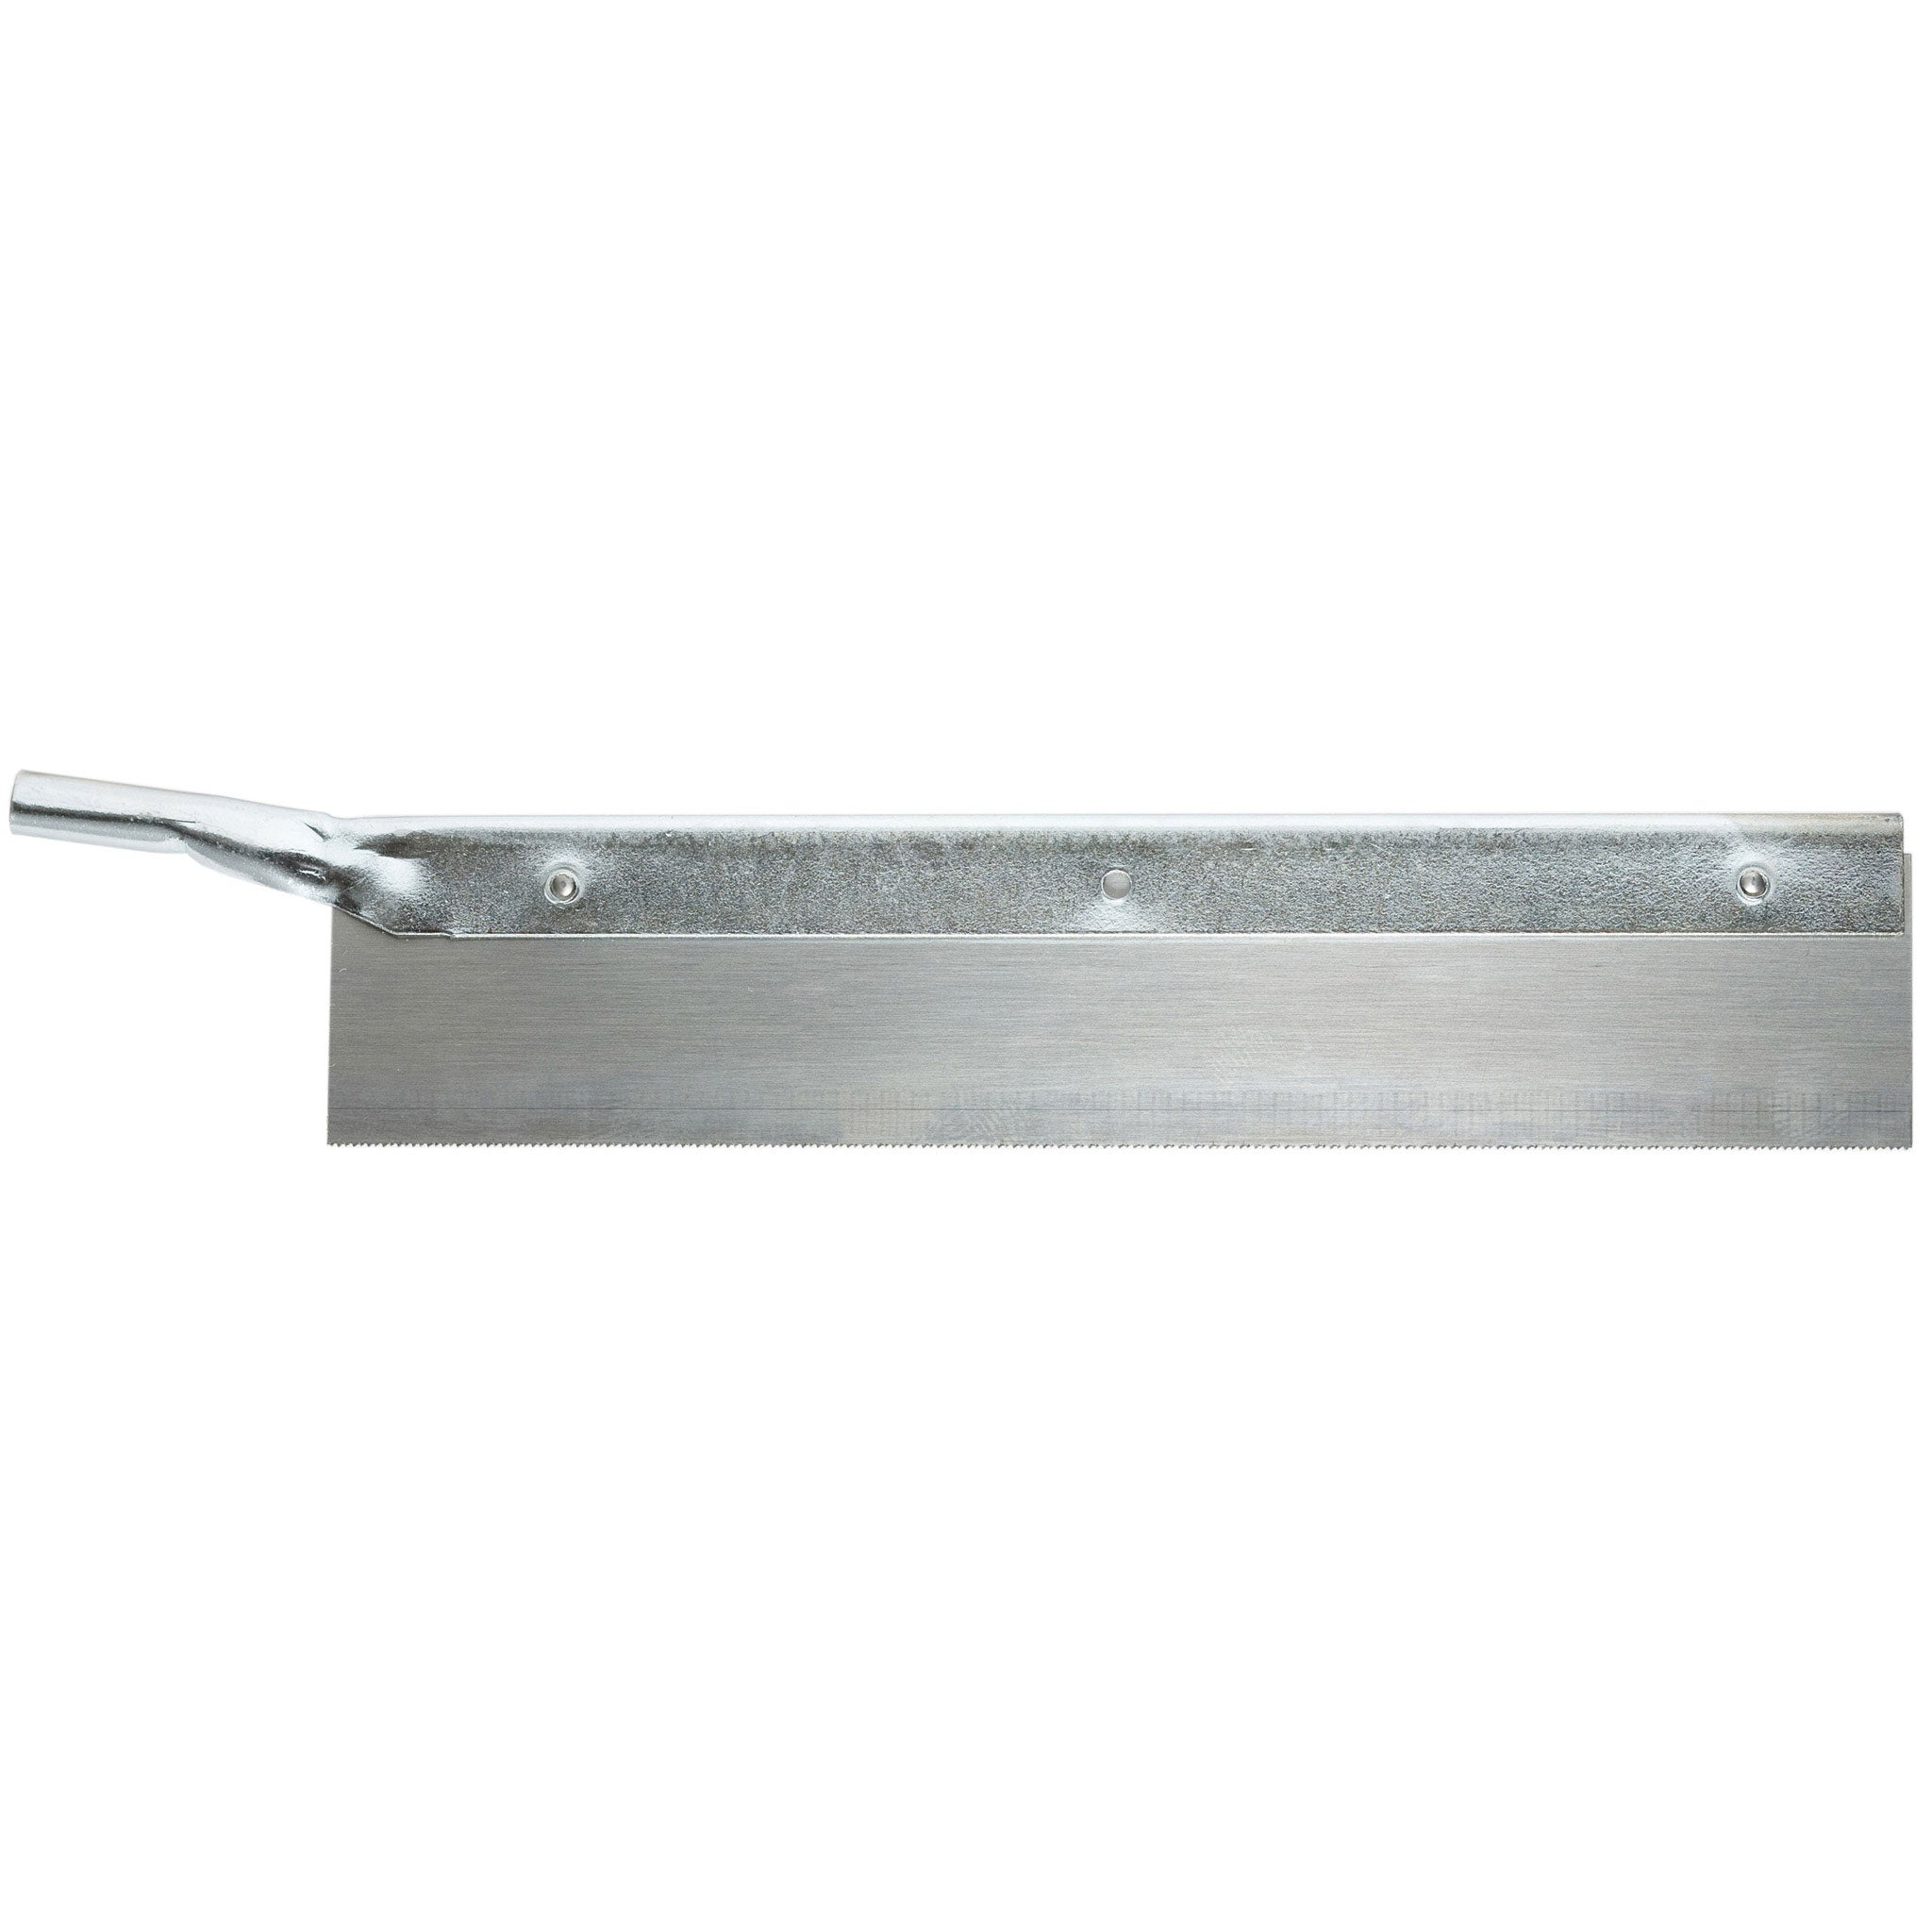 Razor Pull Saw Blades 42 Teeth per Inch